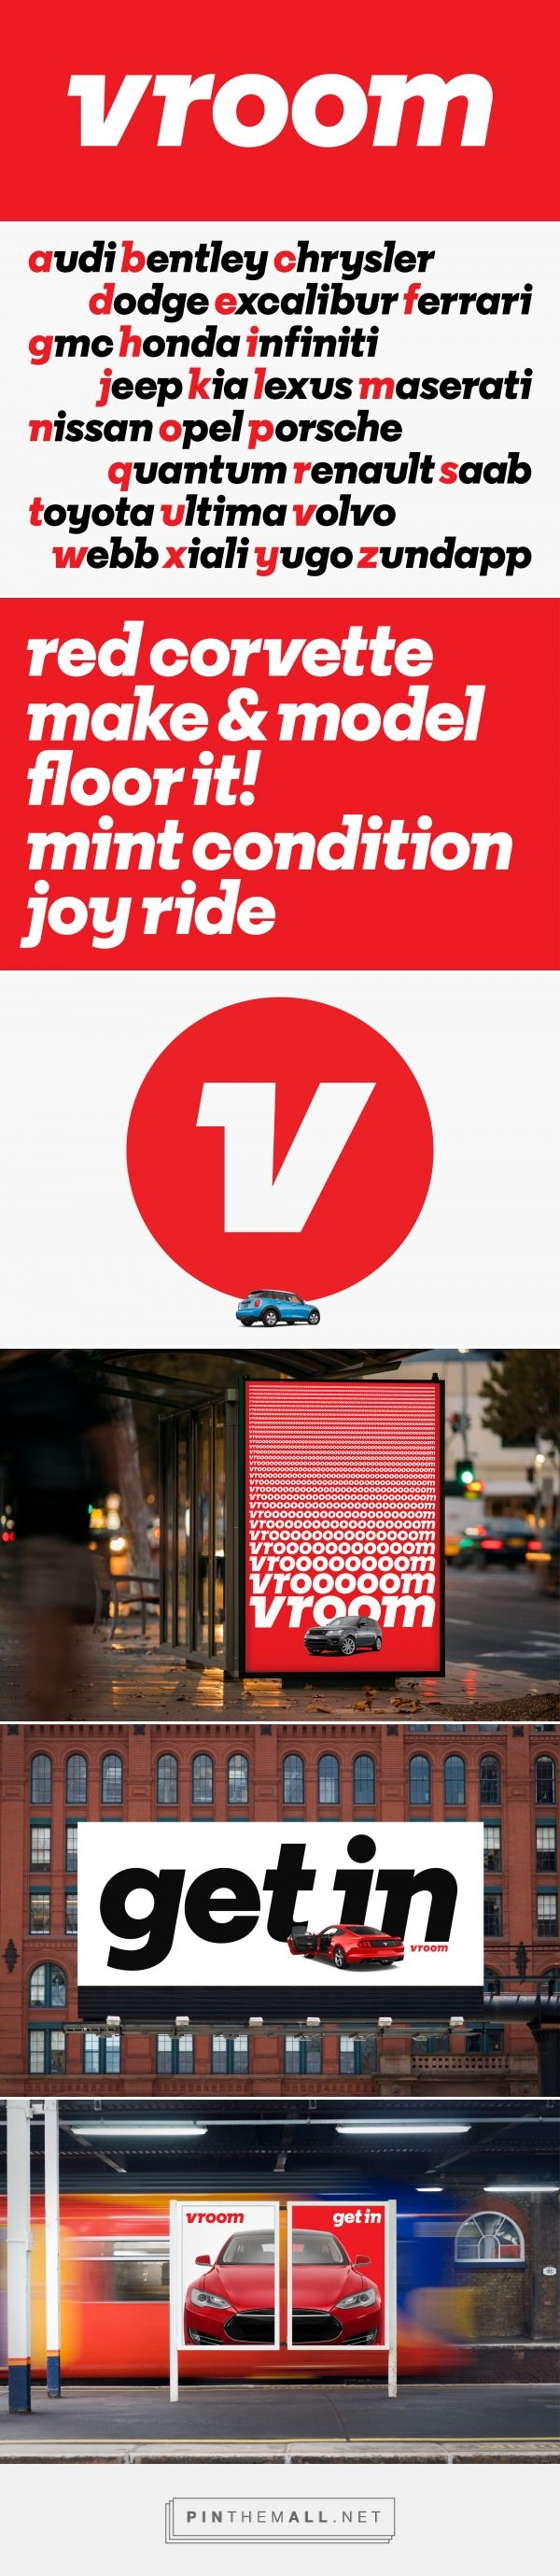 New Logo and Identity for Vroom by Pentagram Identity